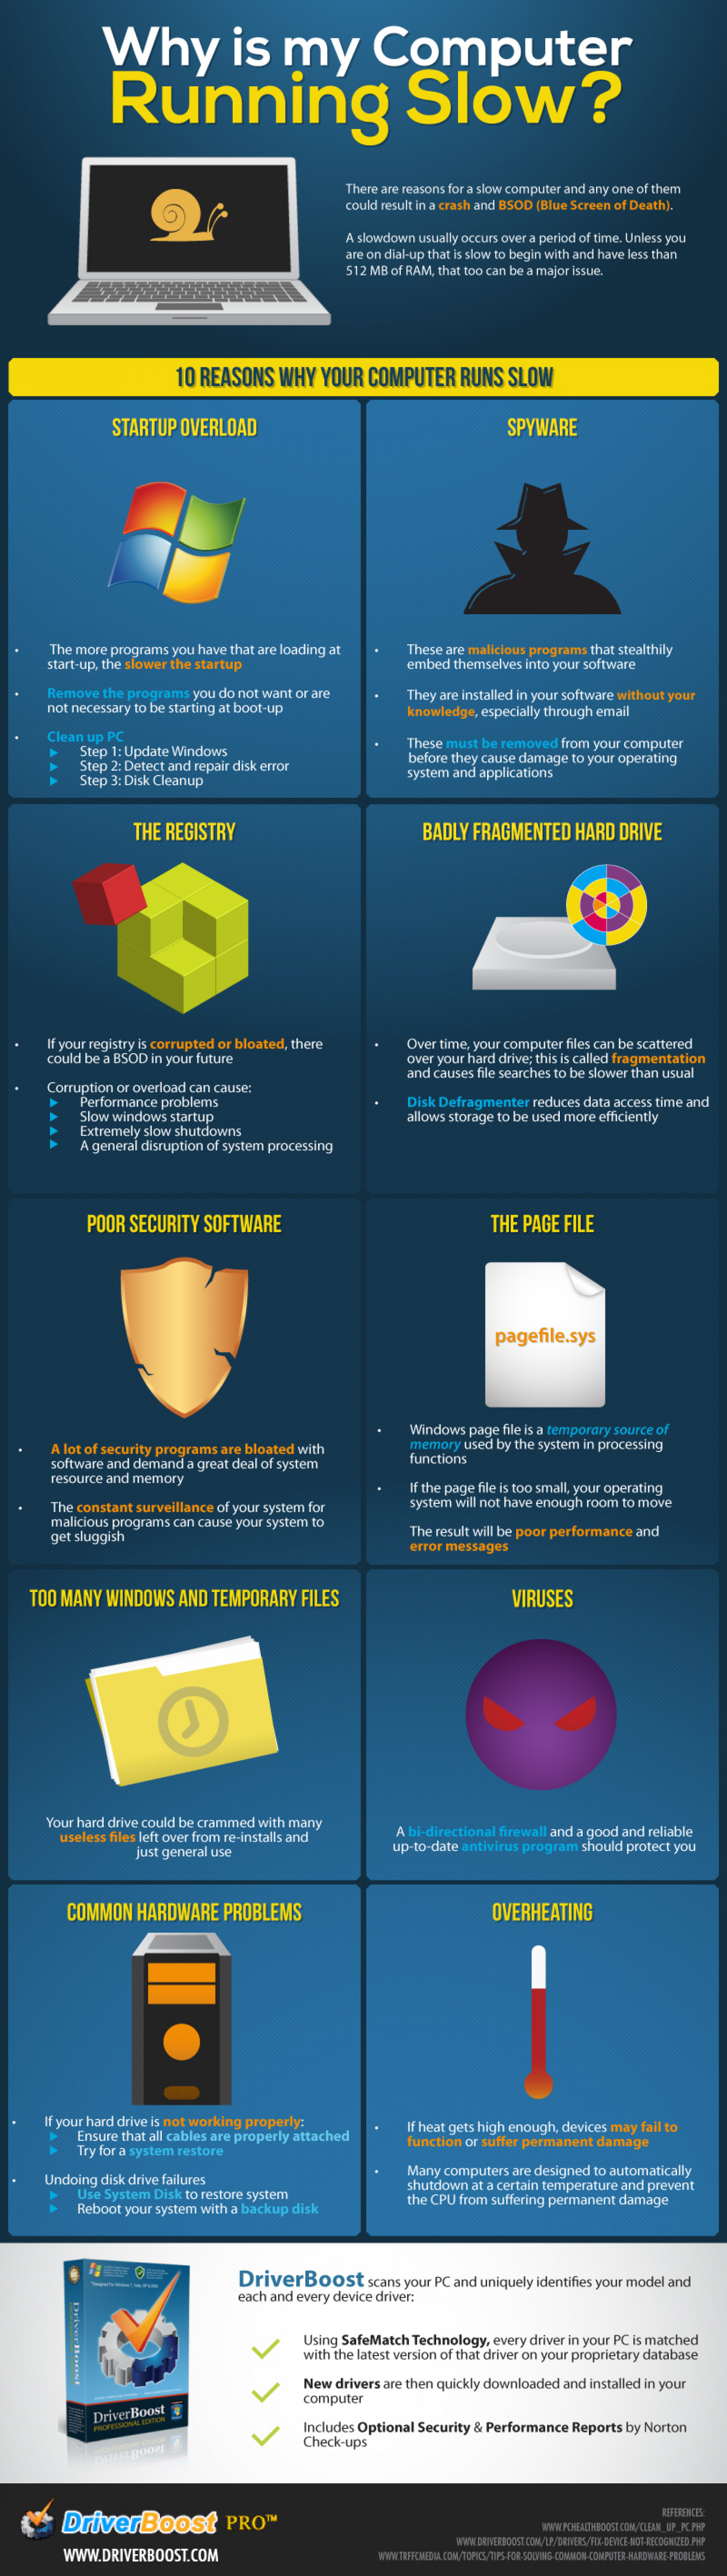 Common Reasons Why a Computer Runs Slow Infographic